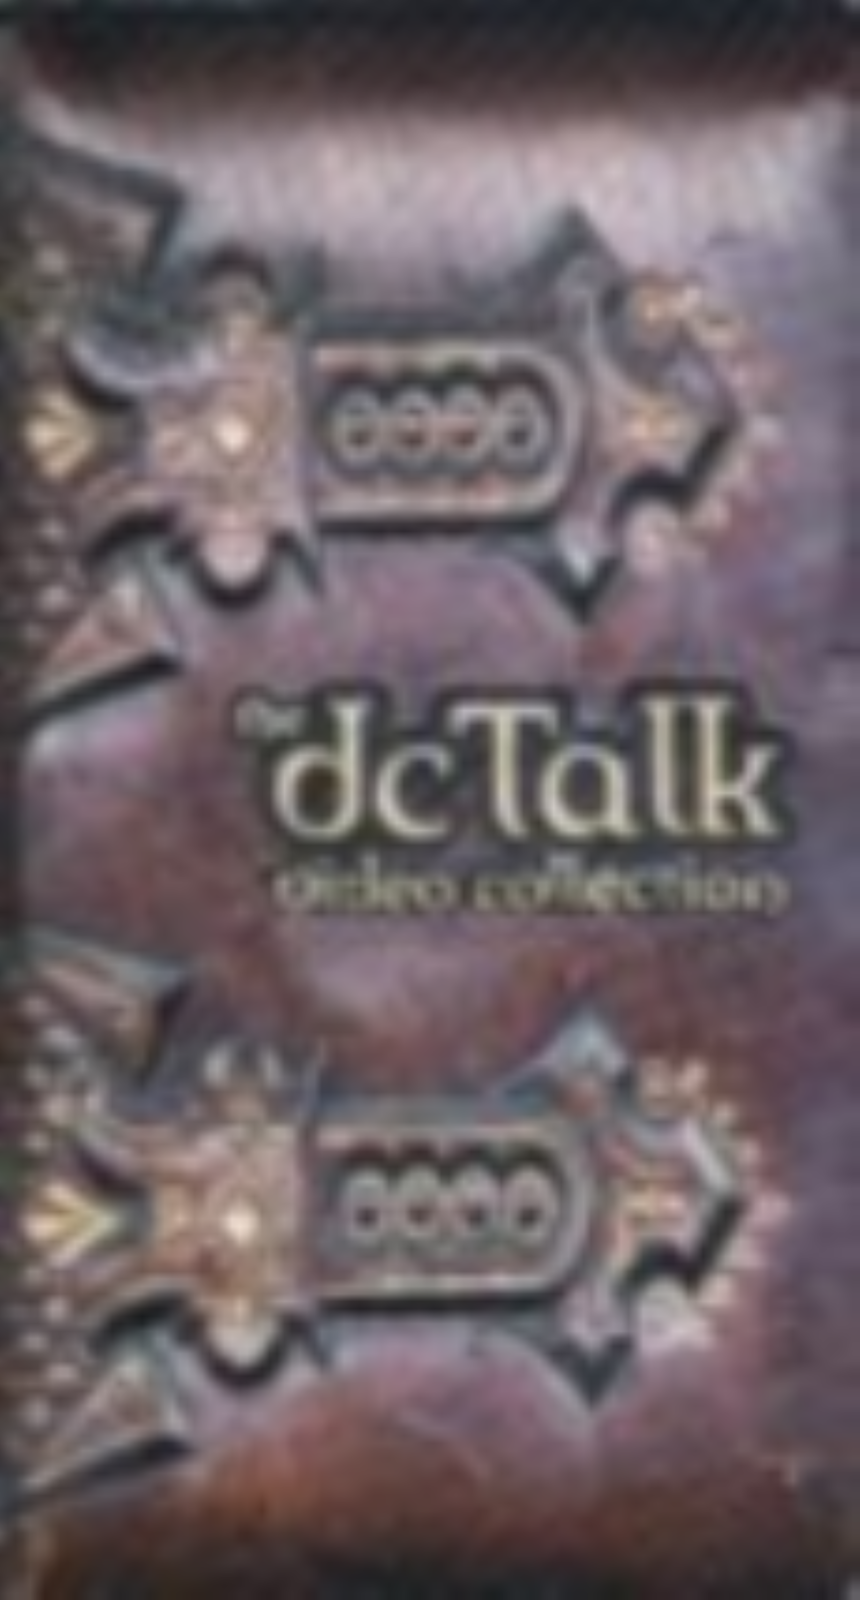 The DC Talk: Video Collection Vhs